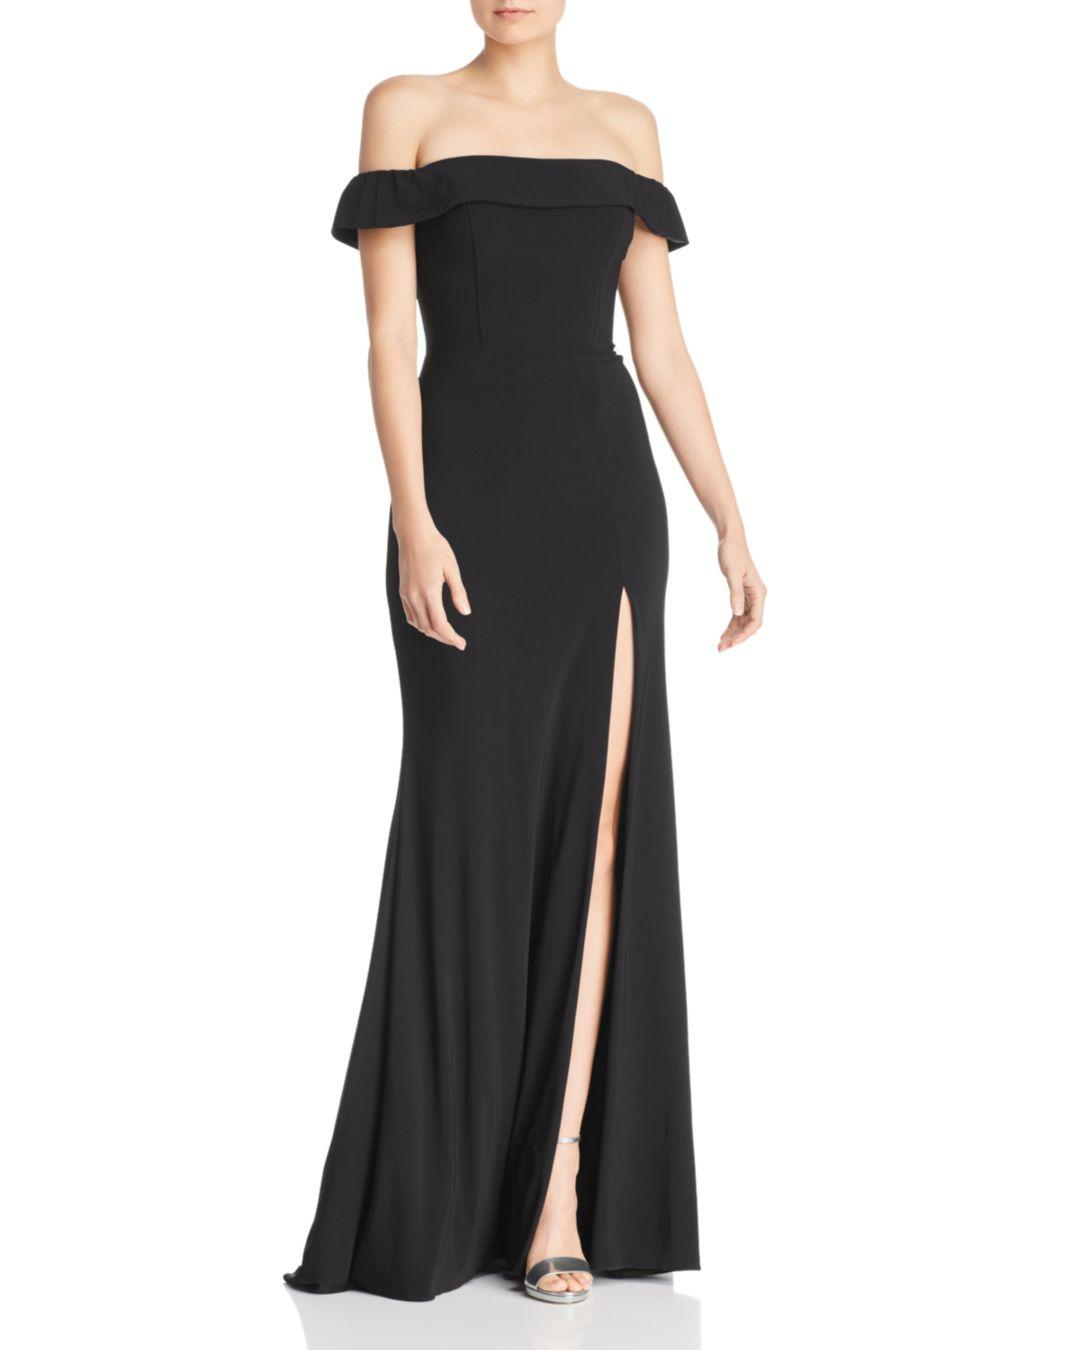 60ca28e0ba8 Lyst - Faviana Couture Off-the-shoulder Gown in Black - Save 1%